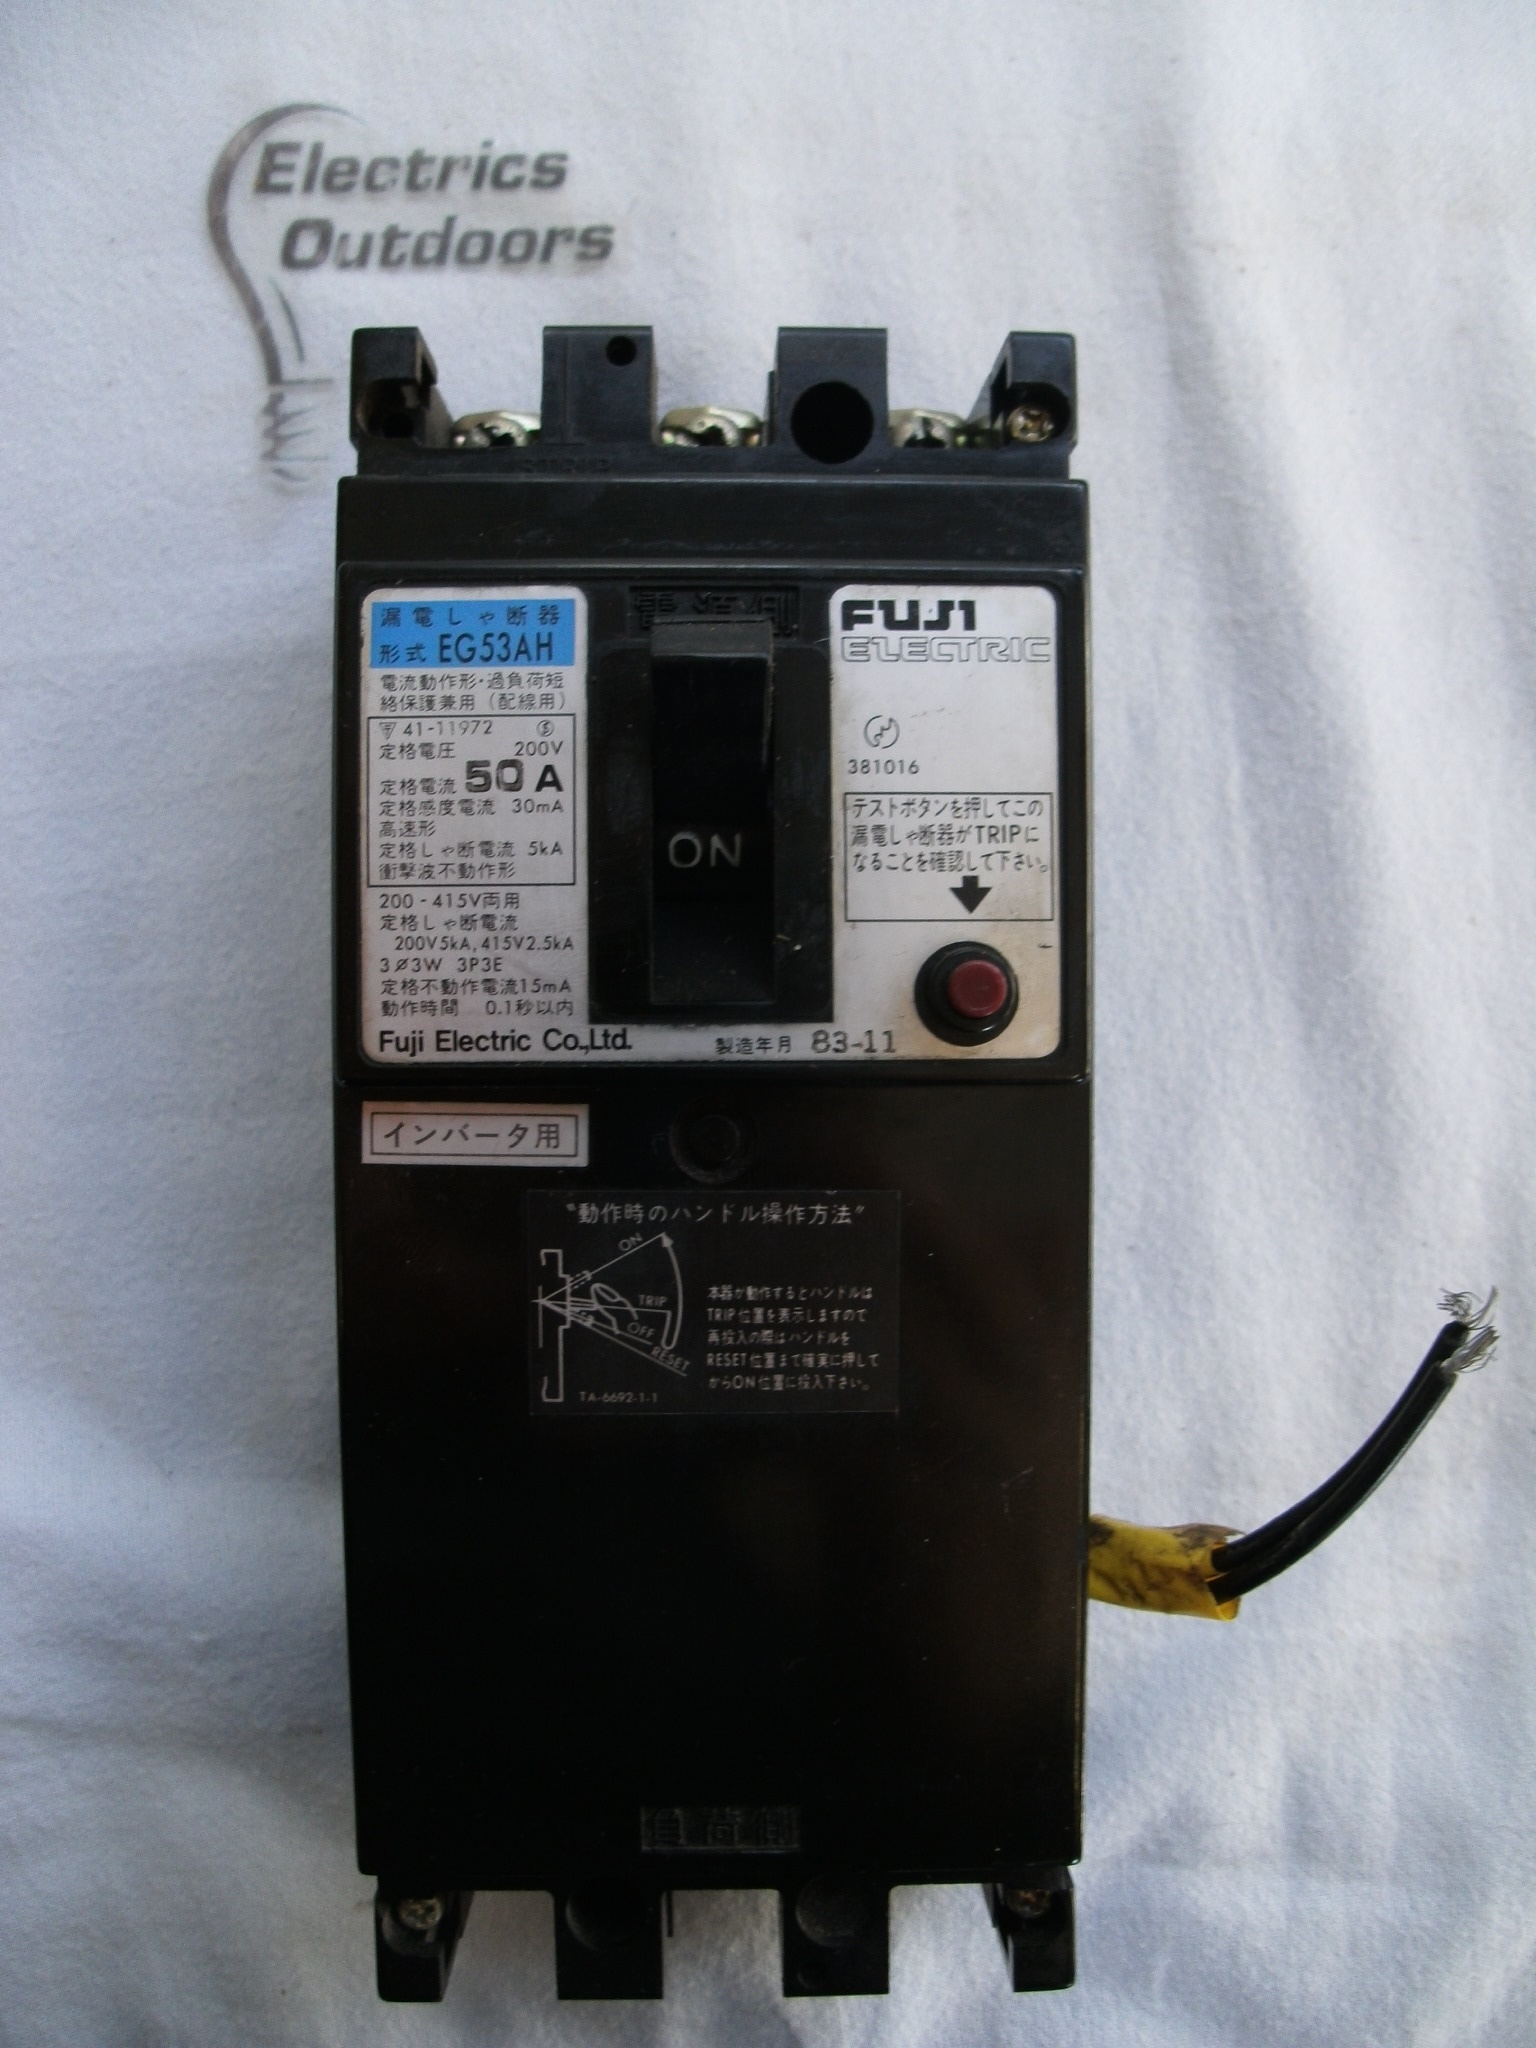 FUJI ELECTRIC 50 AMP 5 kA 30 mA TRIPLE POLE CIRCUIT BREAKER EG53AH 83-11 381016